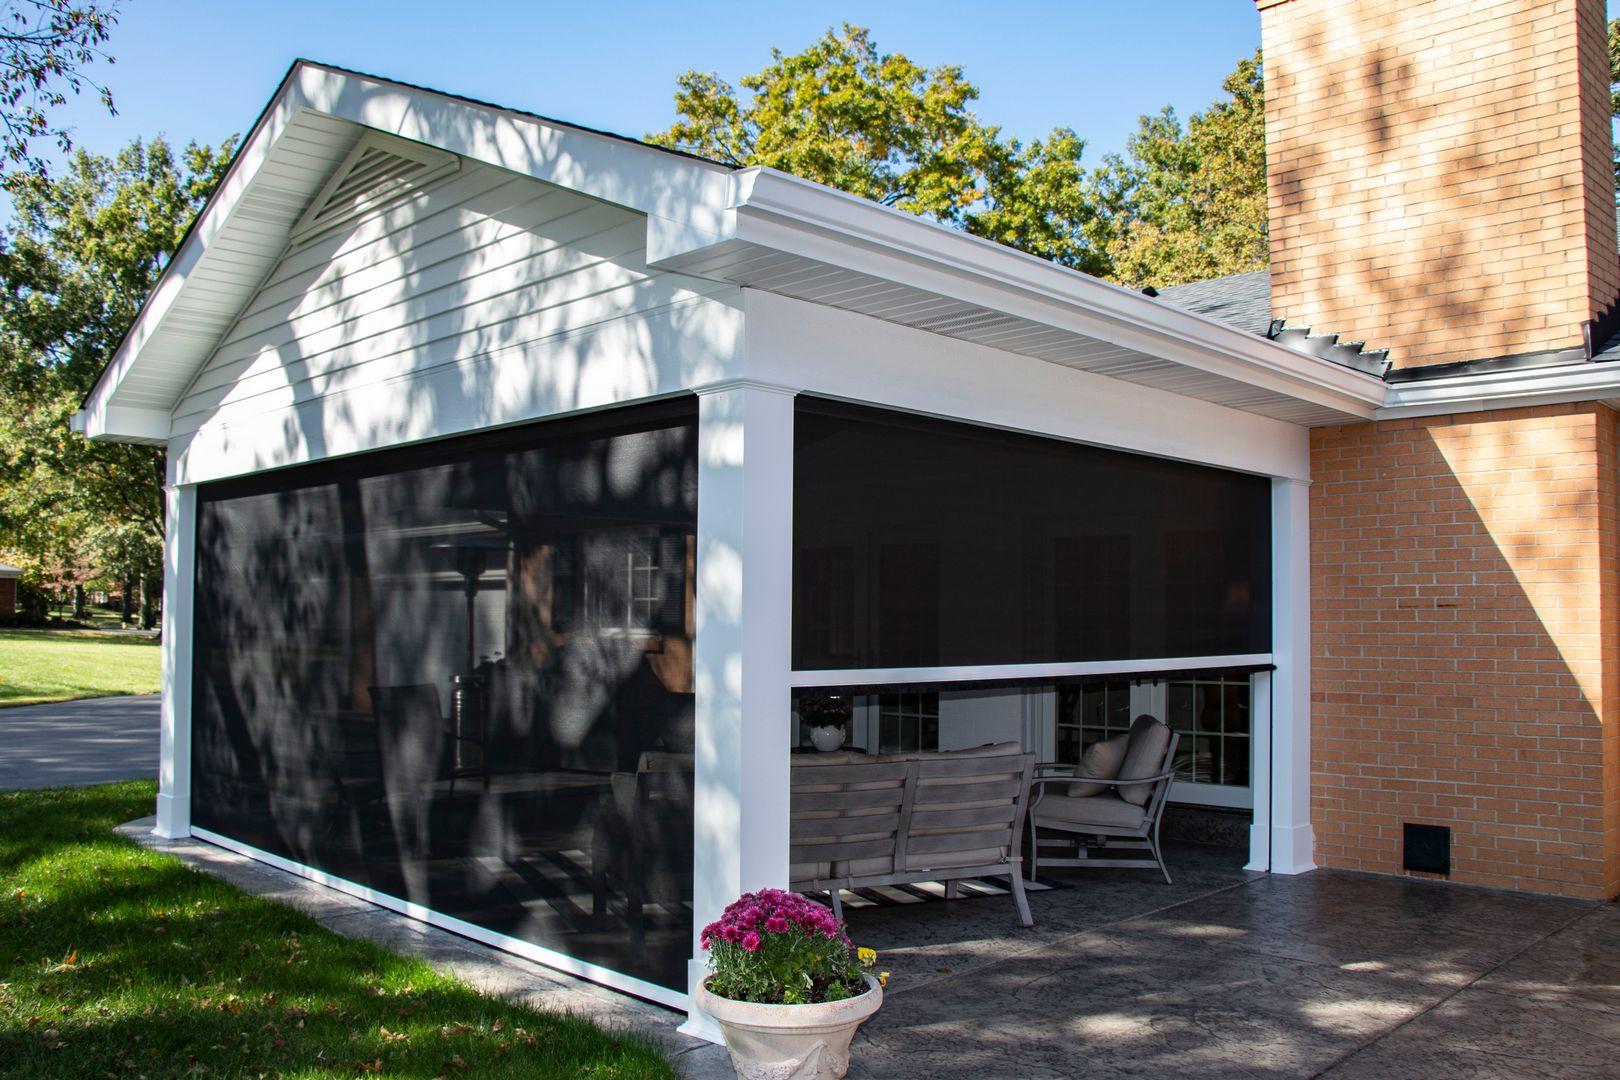 An outdoor room addition with three retractable screen walls